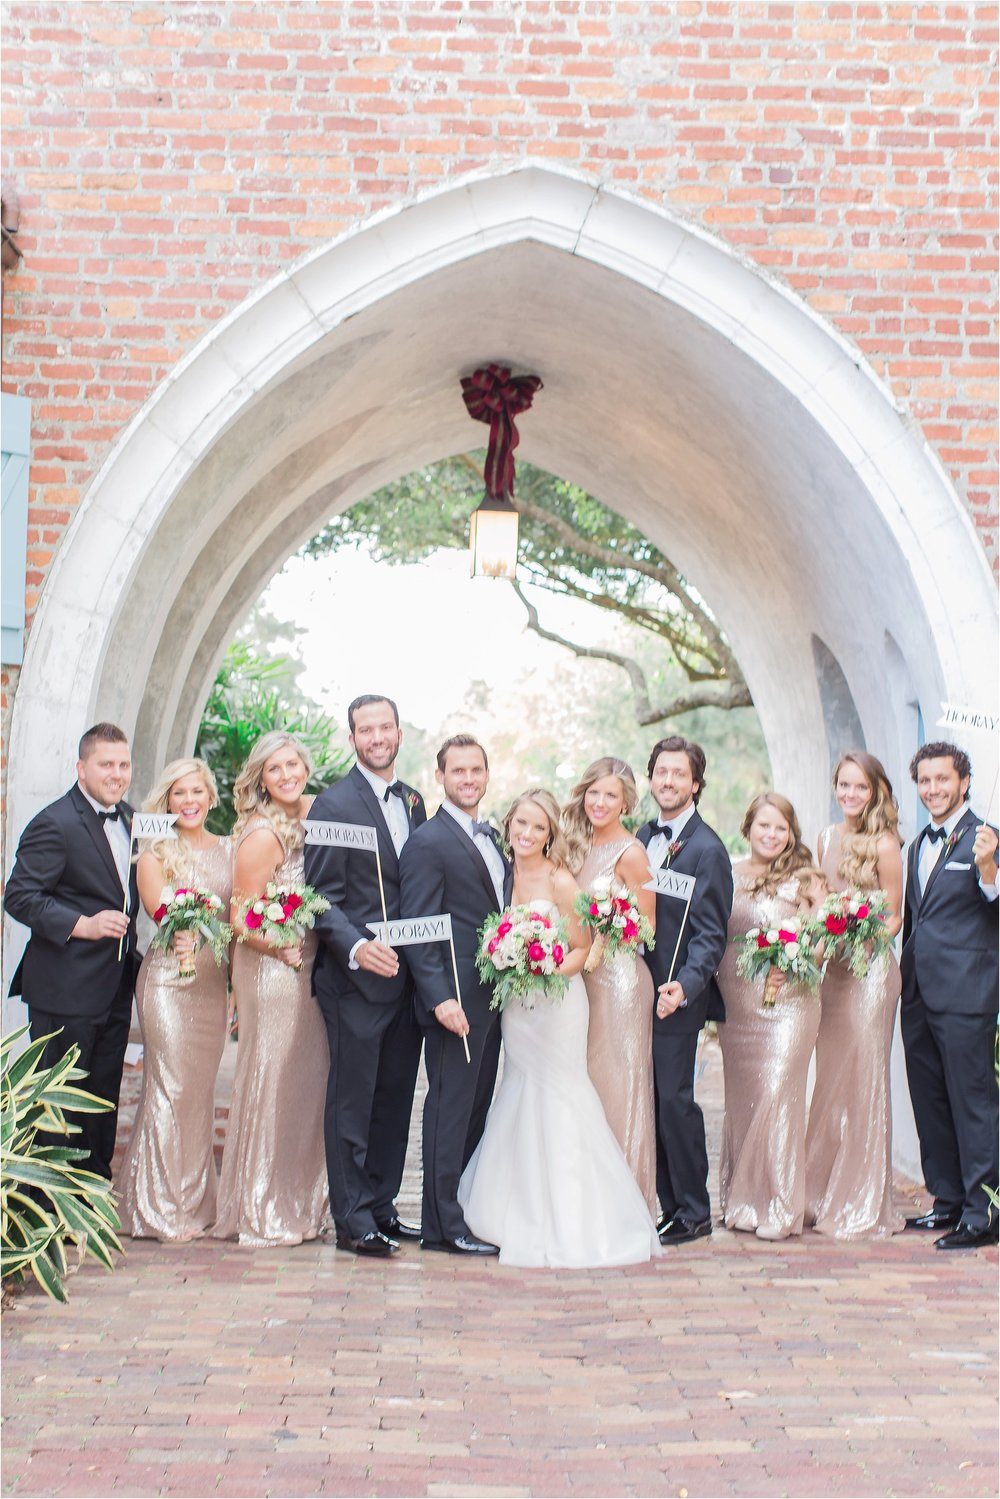 Casa_Feliz_Alfond_Inn_Winter_WeddingndhamGrandWedding_0084.jpg